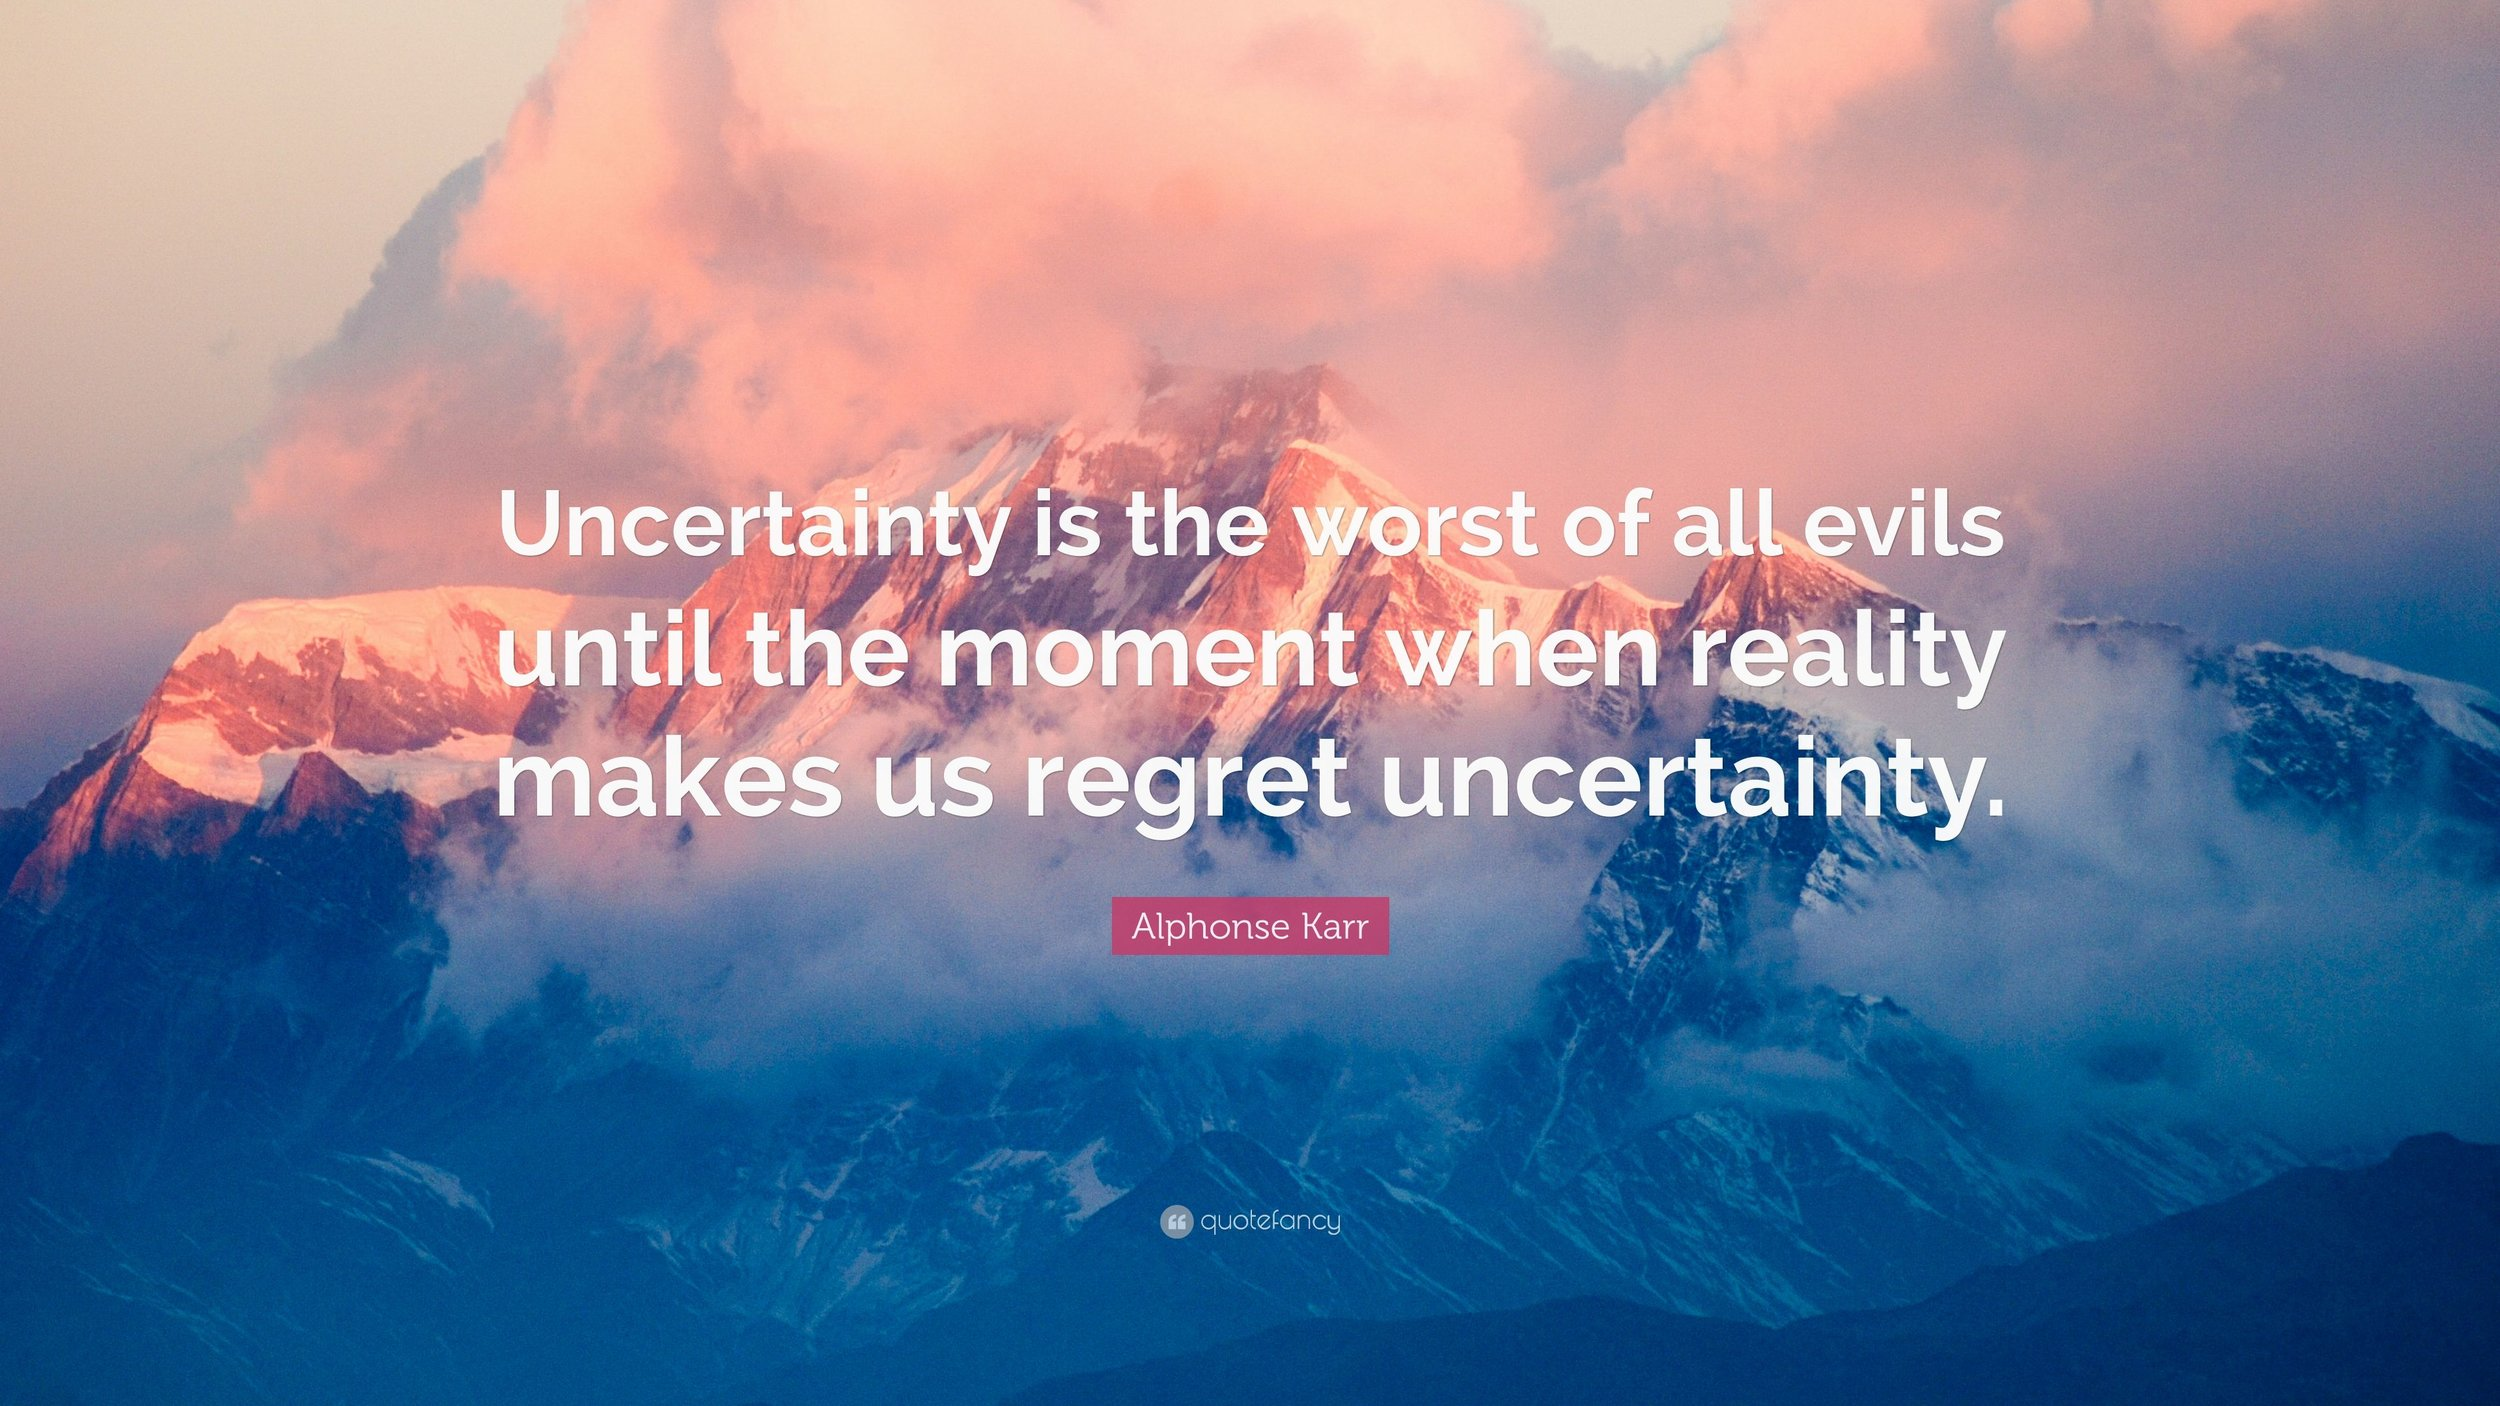 Alphonse-Karr-Quote-Uncertainty-is-the-worst-of-all-evils-until (1).jpg